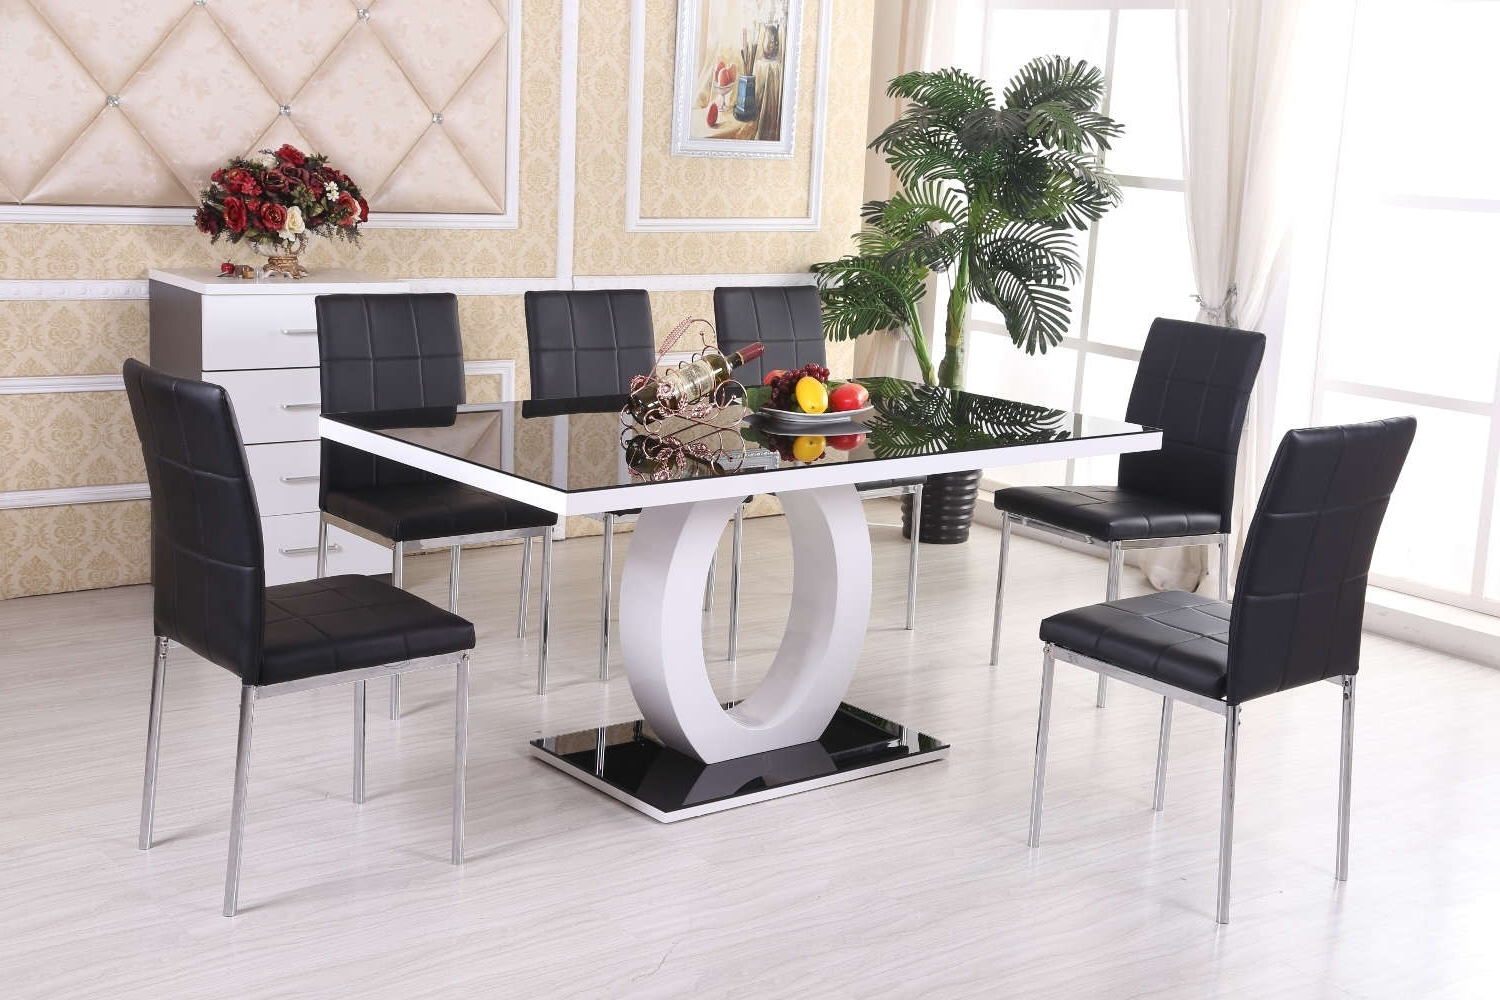 Dining Table Set With 6 Chairs – Castrophotos With Well Liked Black Glass Extending Dining Tables 6 Chairs (View 14 of 25)